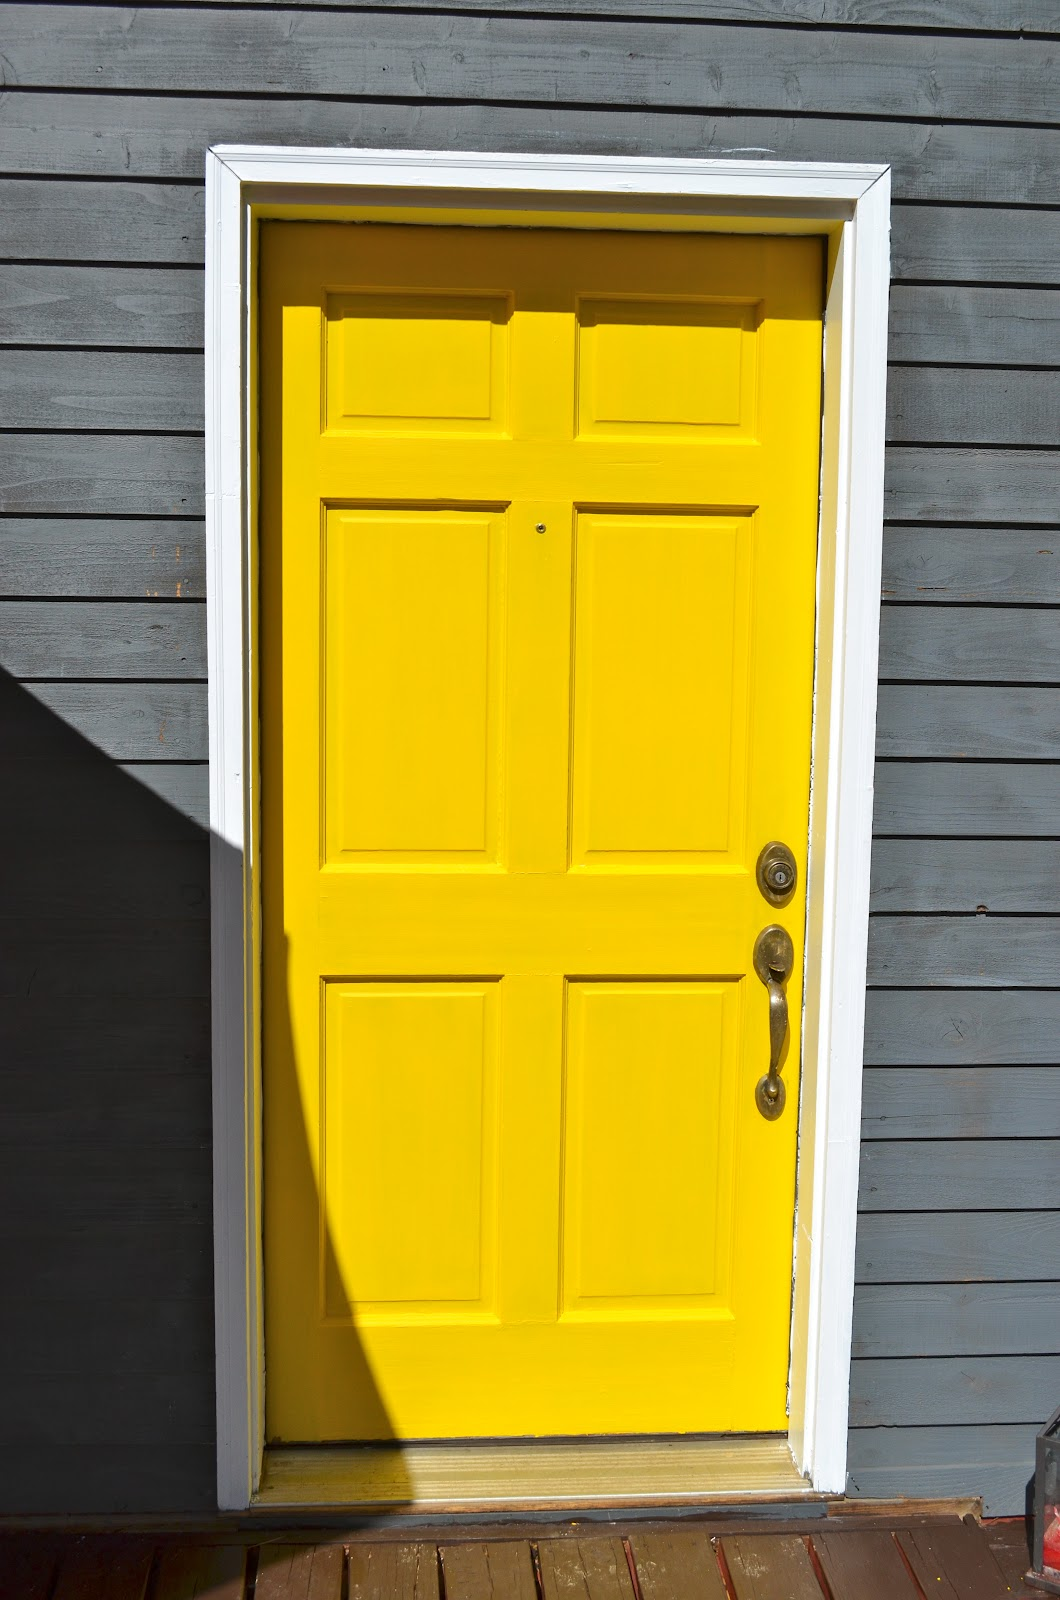 We ripped up carpet and painted walls and moved furniture and painted our porch. But my favorite task was painting our front door yellow! & Braner Party of 7: Yellow Door pezcame.com